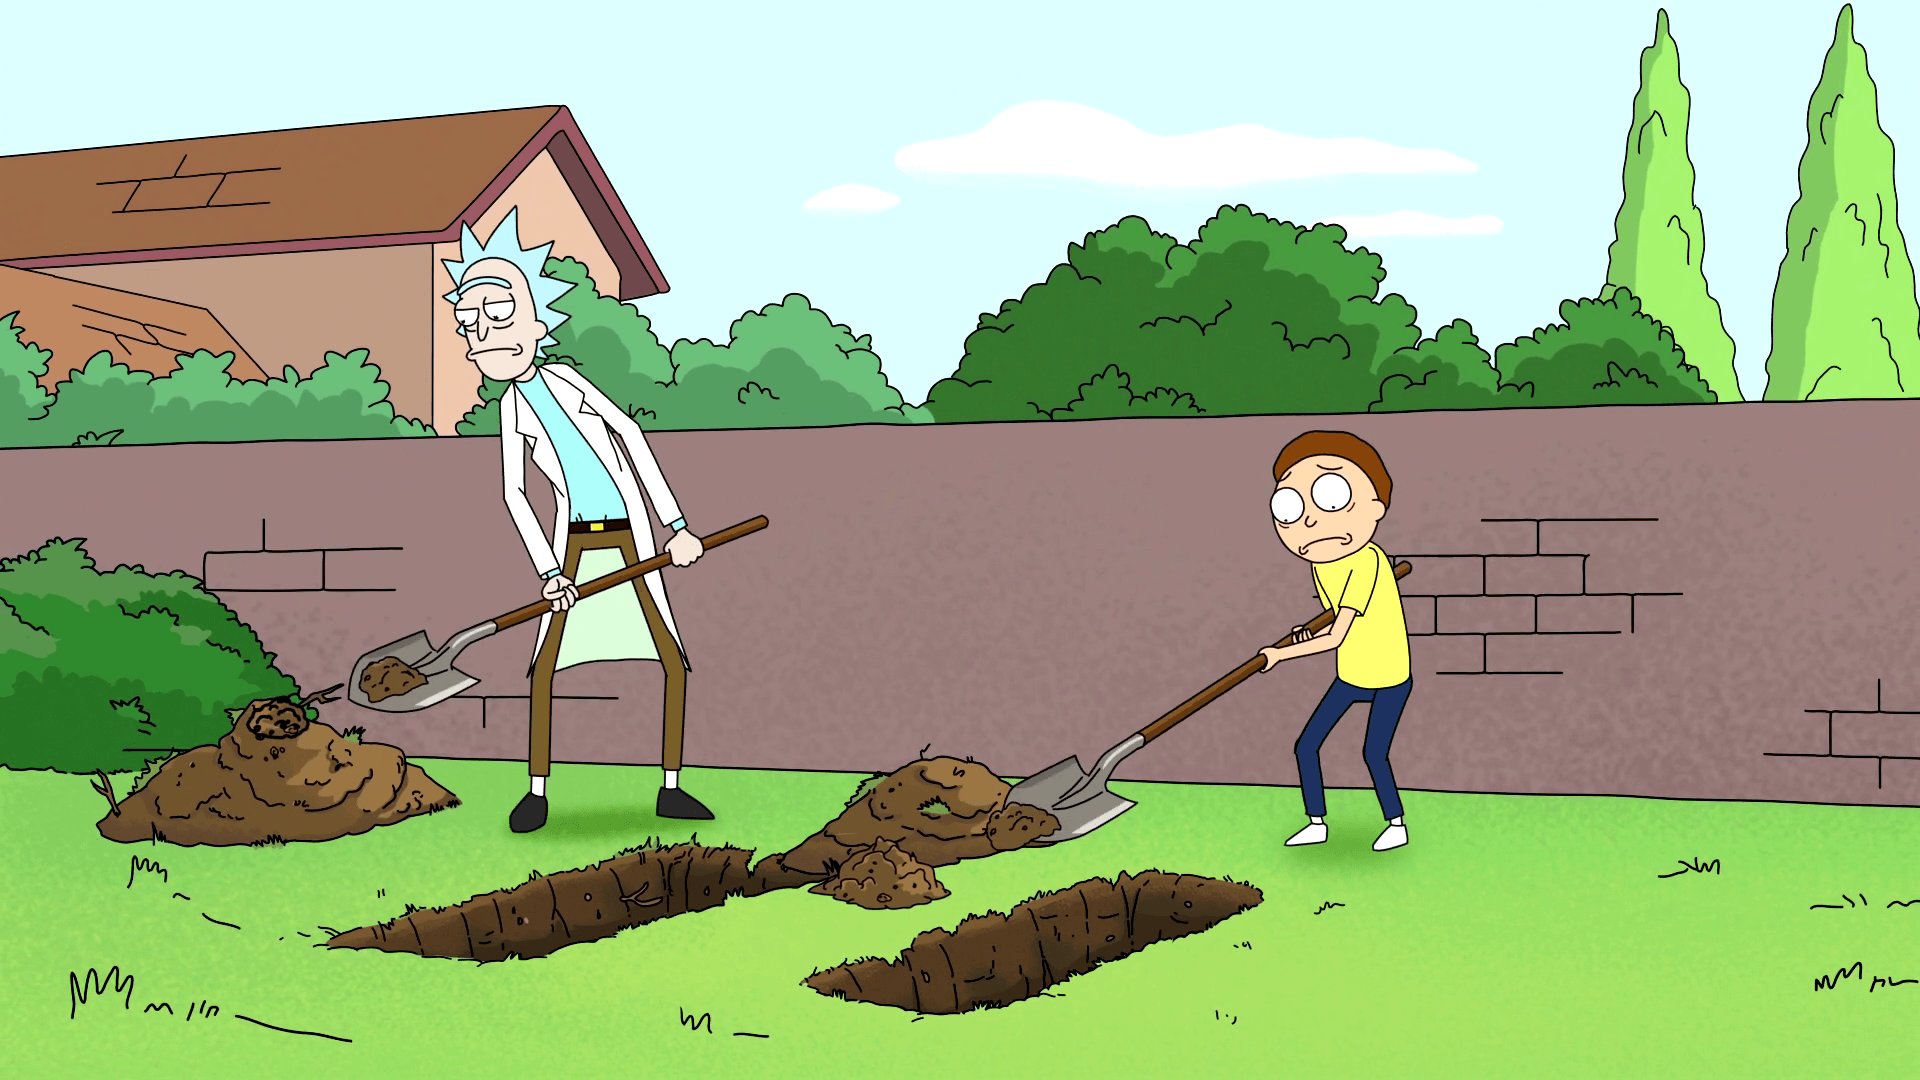 rick and morty background, rick and morty wallpaper 1080p